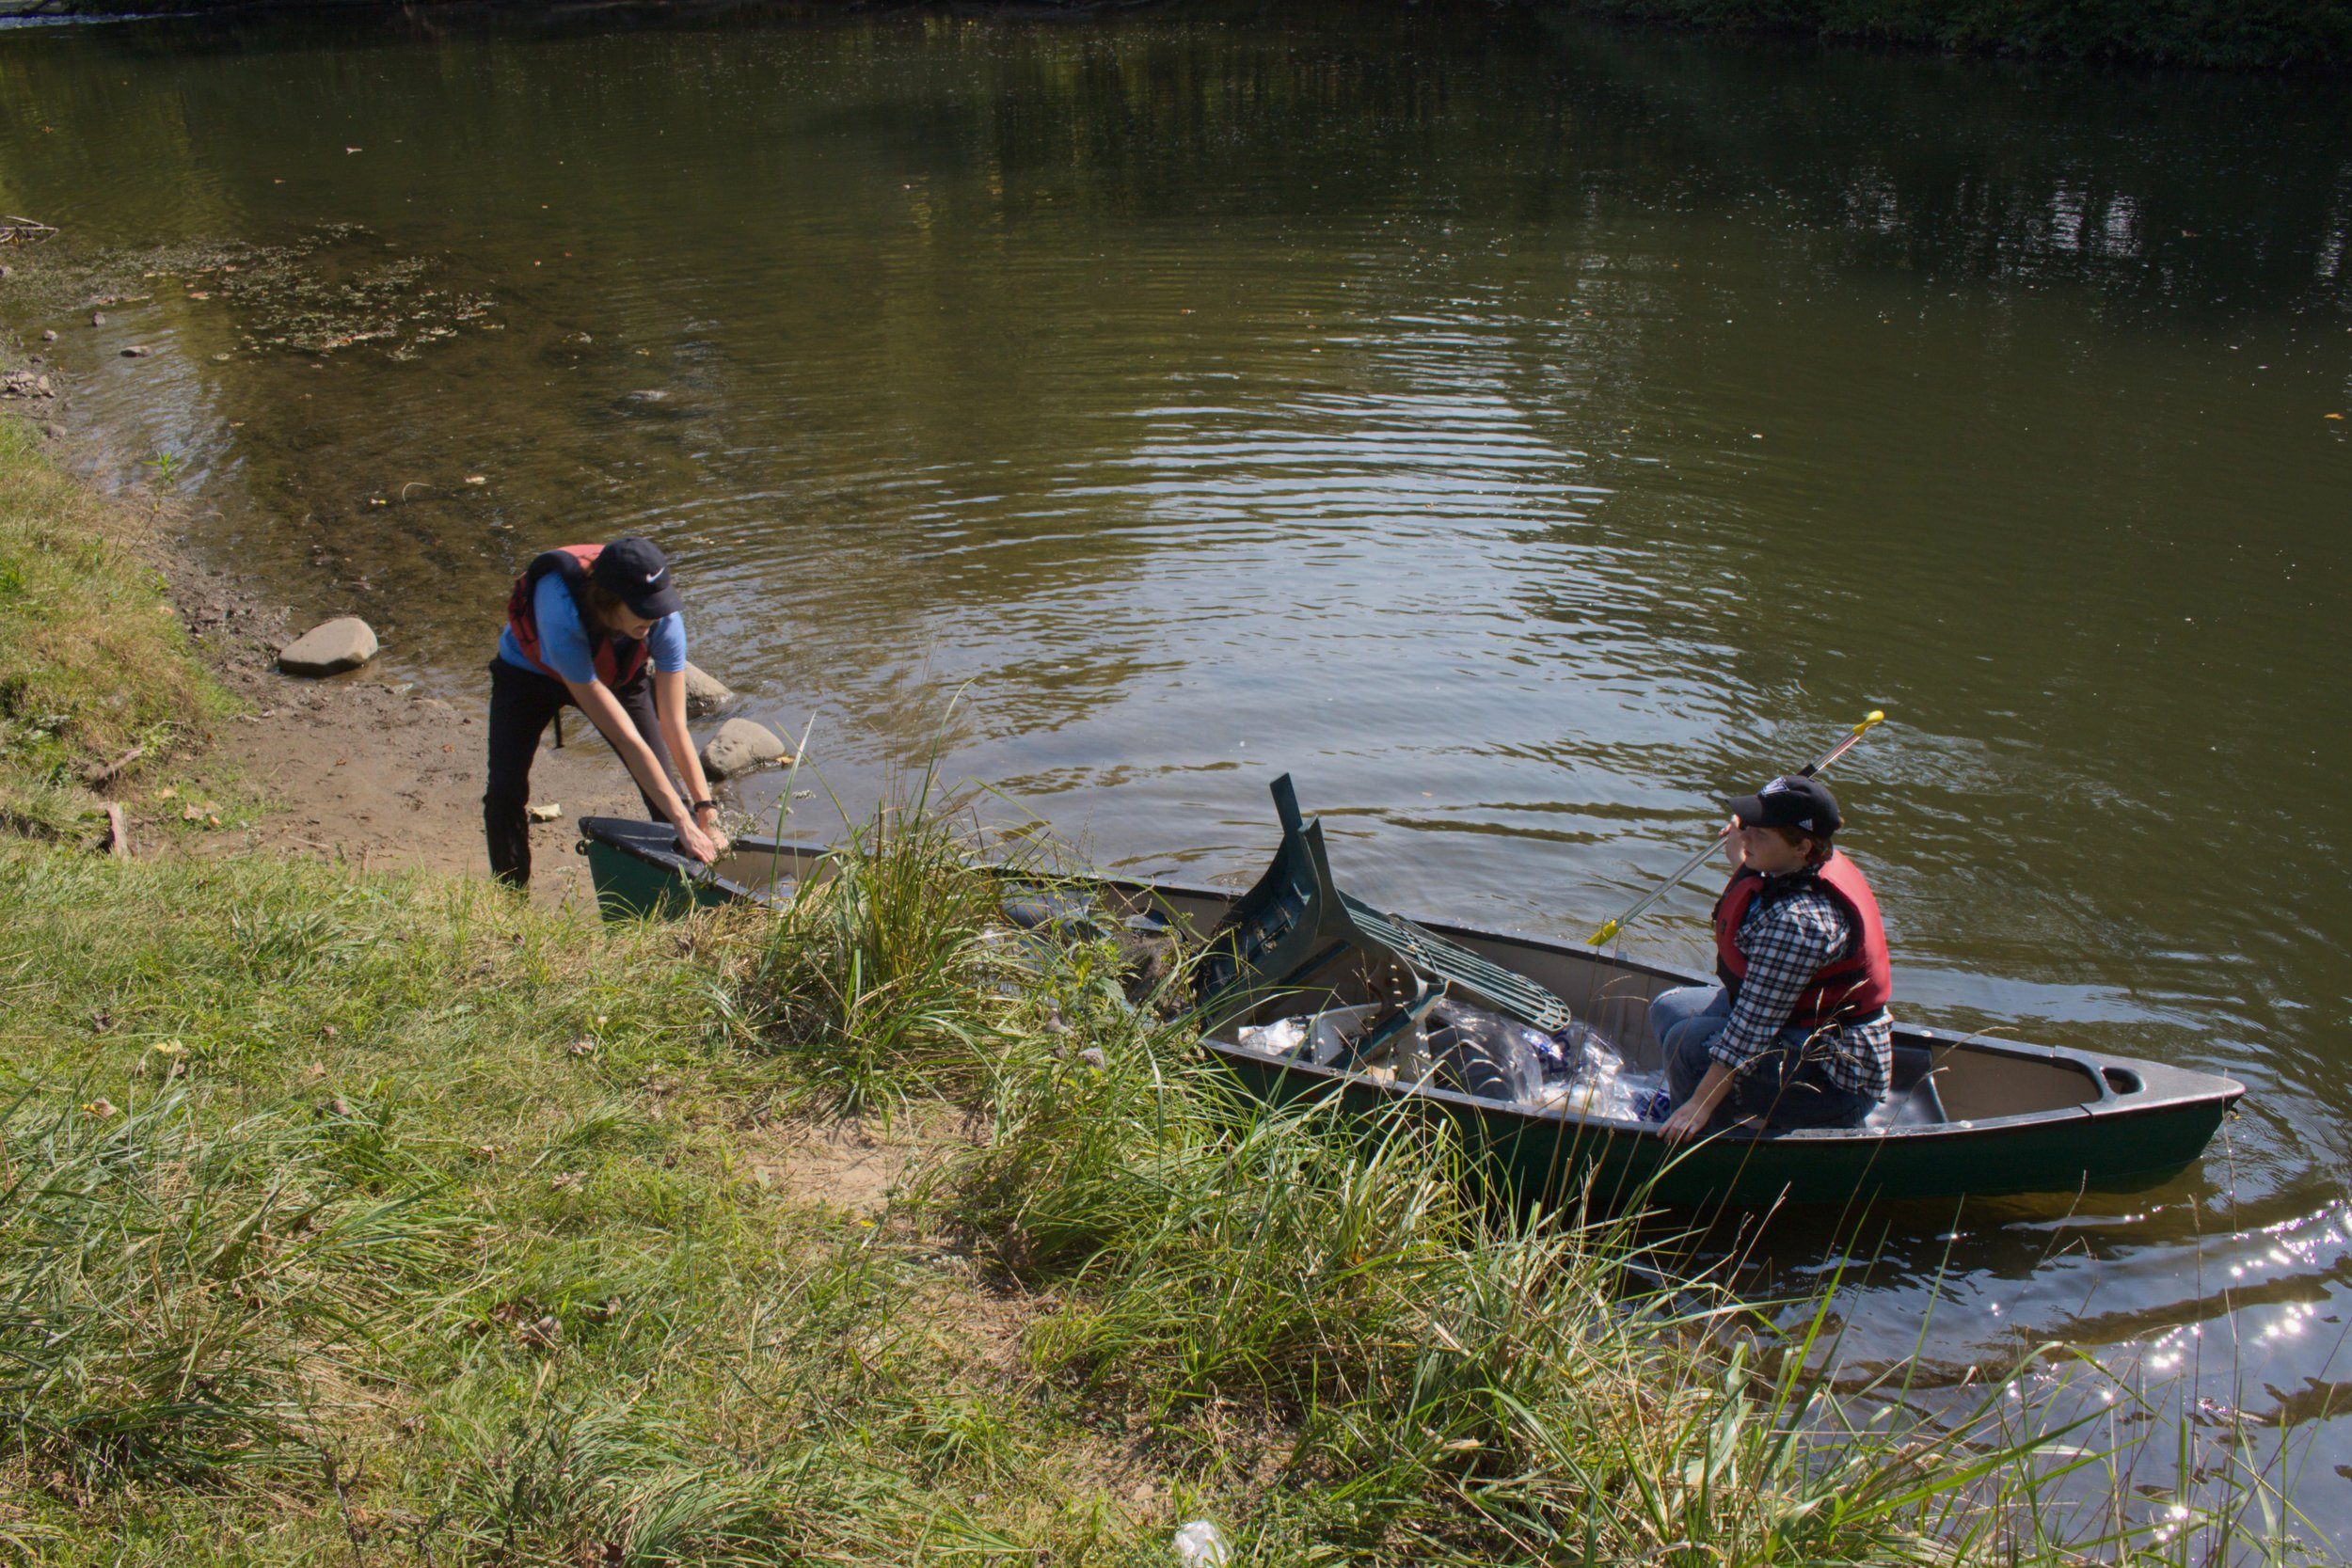 By the time Kamaloski and O'Neill reached Ruehs park again, they had collected several bags of garbage and a plastic Adirondack chair. Once the garbage was removed, the volunteers rinsed out each canoe, which were on loan from Camp O'Malley.